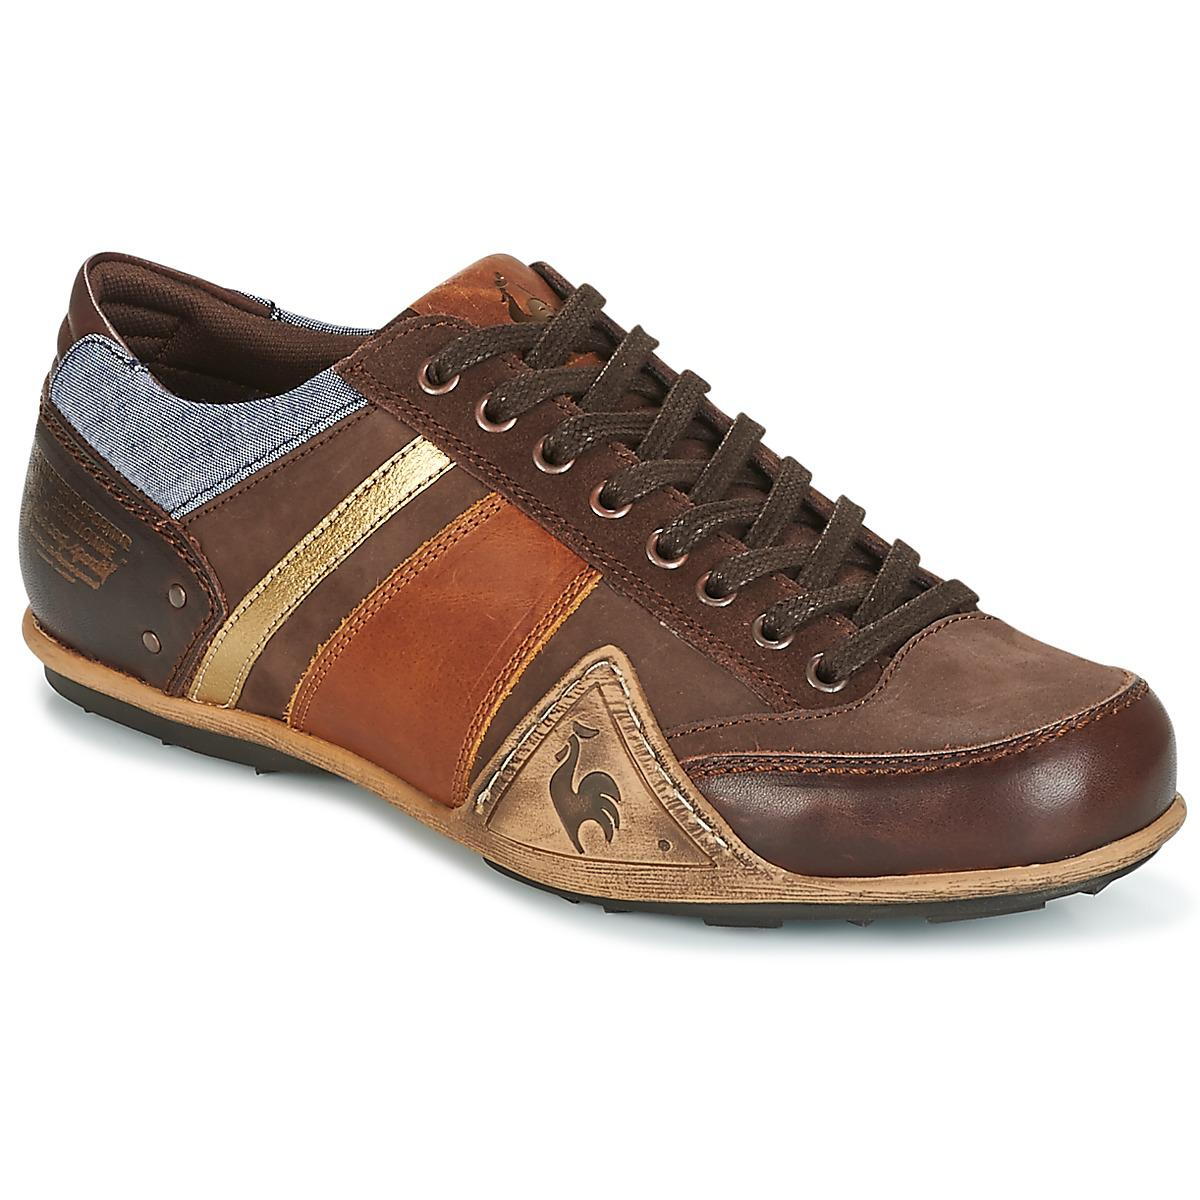 le coq sportif turin leather chambray men 39 s shoes. Black Bedroom Furniture Sets. Home Design Ideas